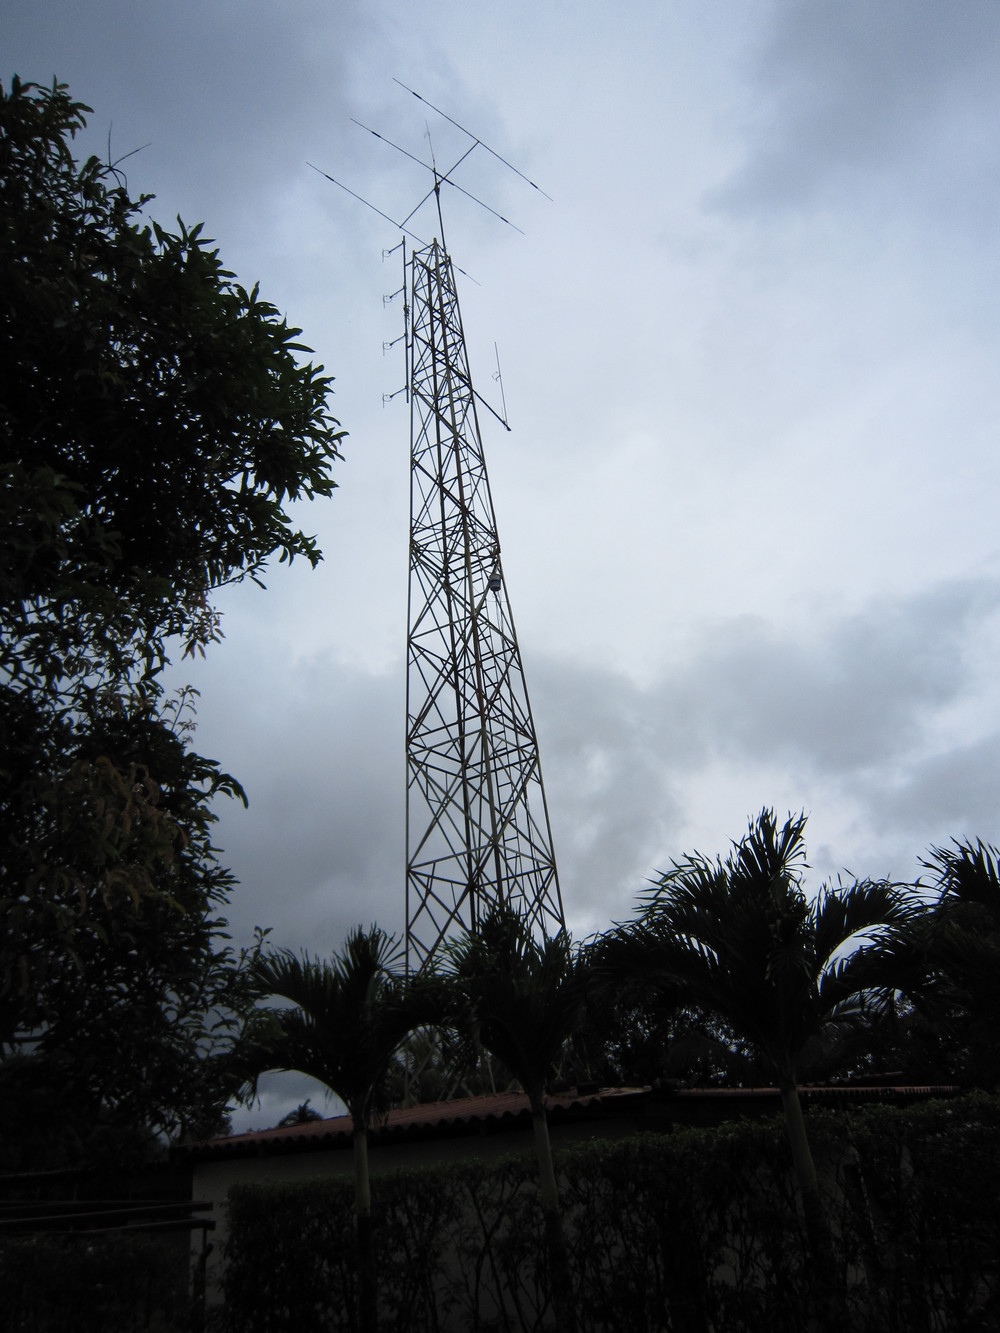 The radio tower